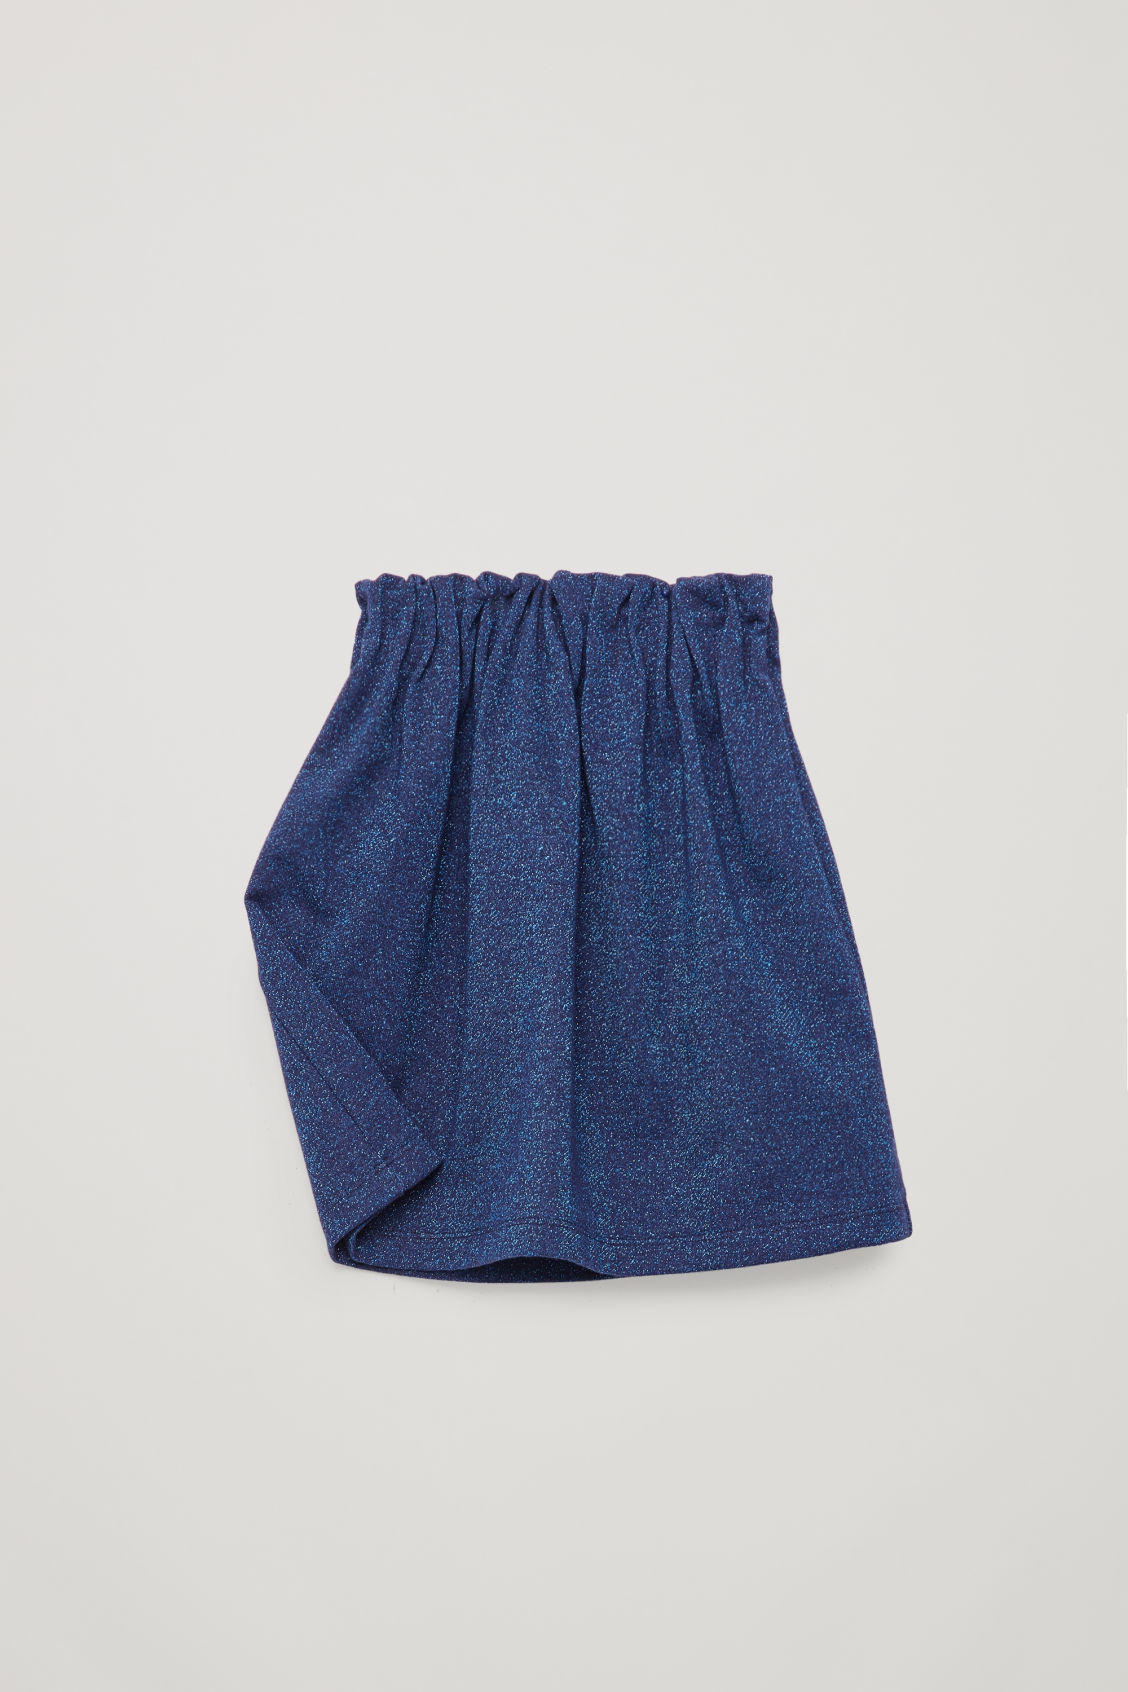 Detailed image of Cos glitter a-line skirt in blue